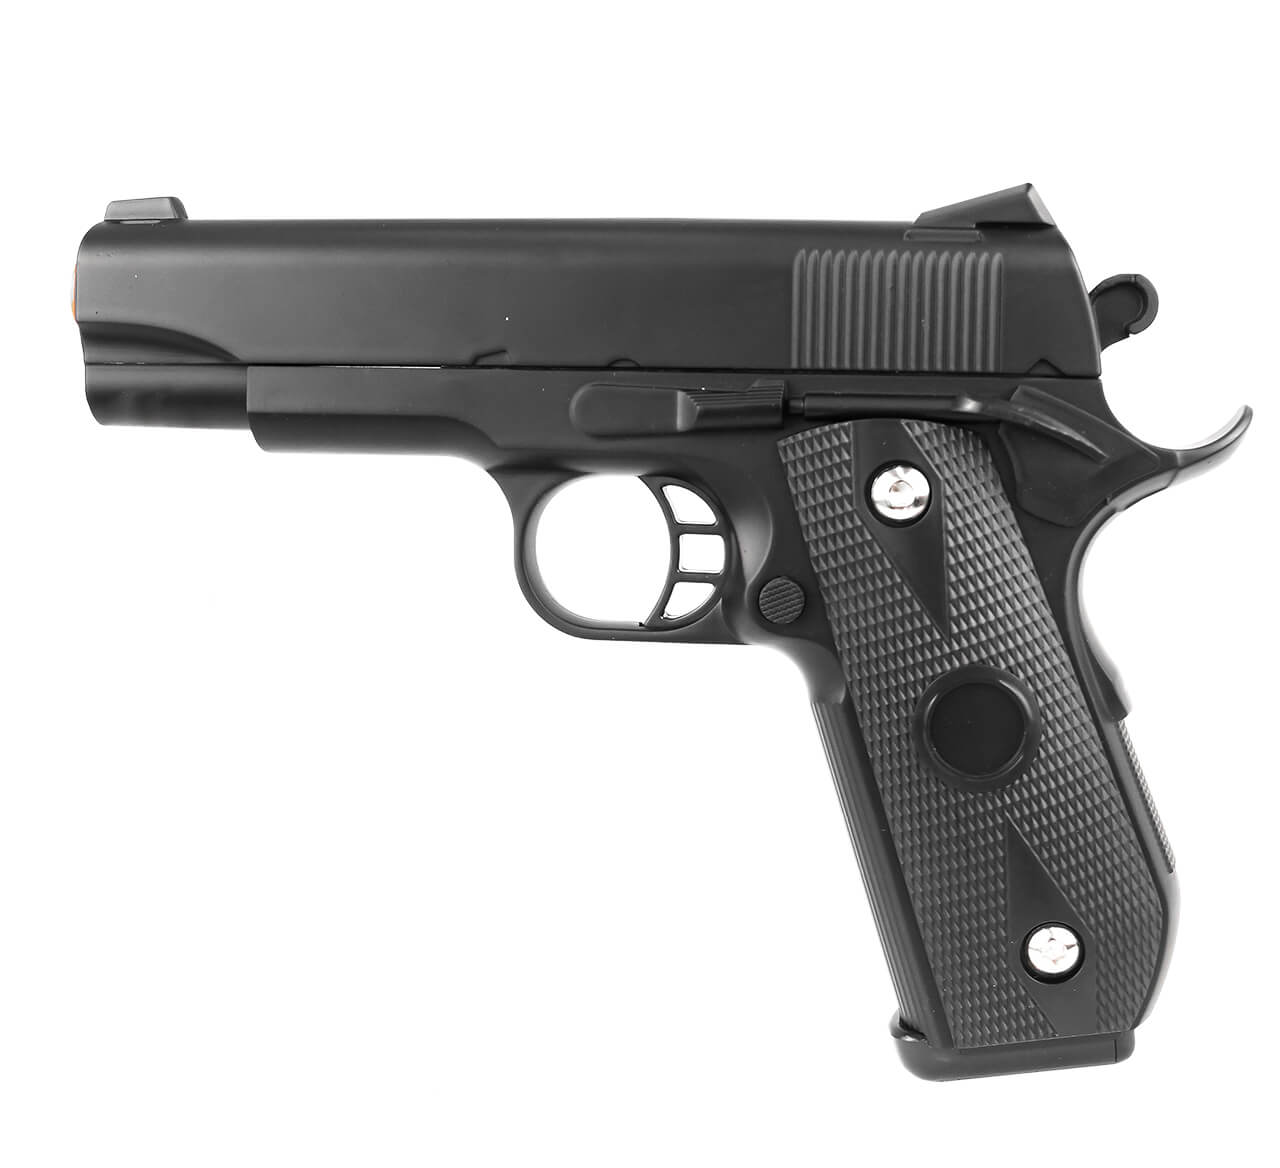 Pistola Airsoft Rossi Mola Metal Vg 1911-v9 6 Mm